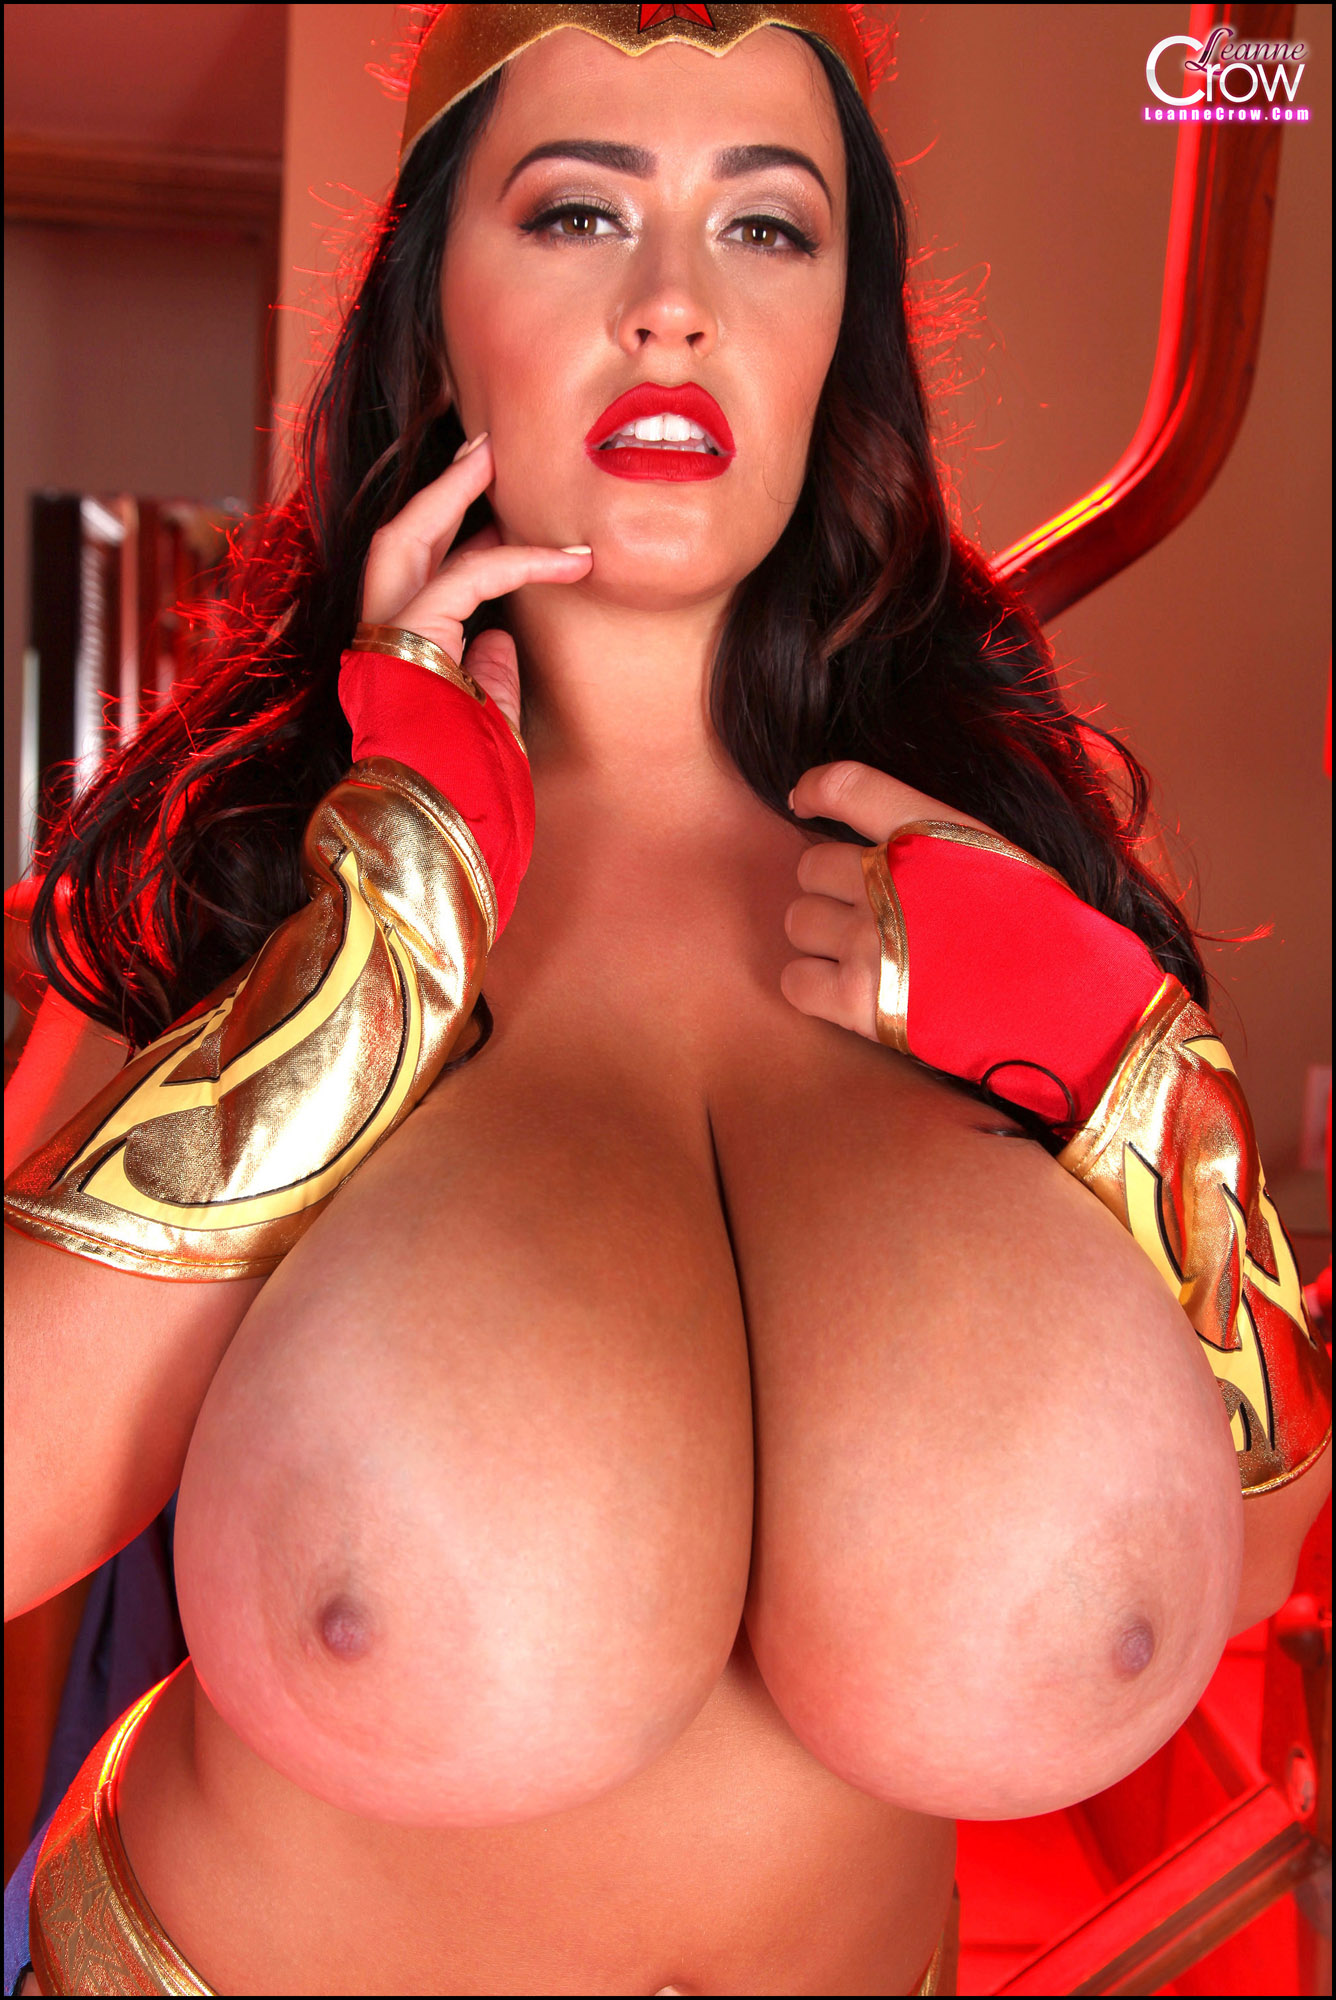 Beauty wonder woman big tits ass